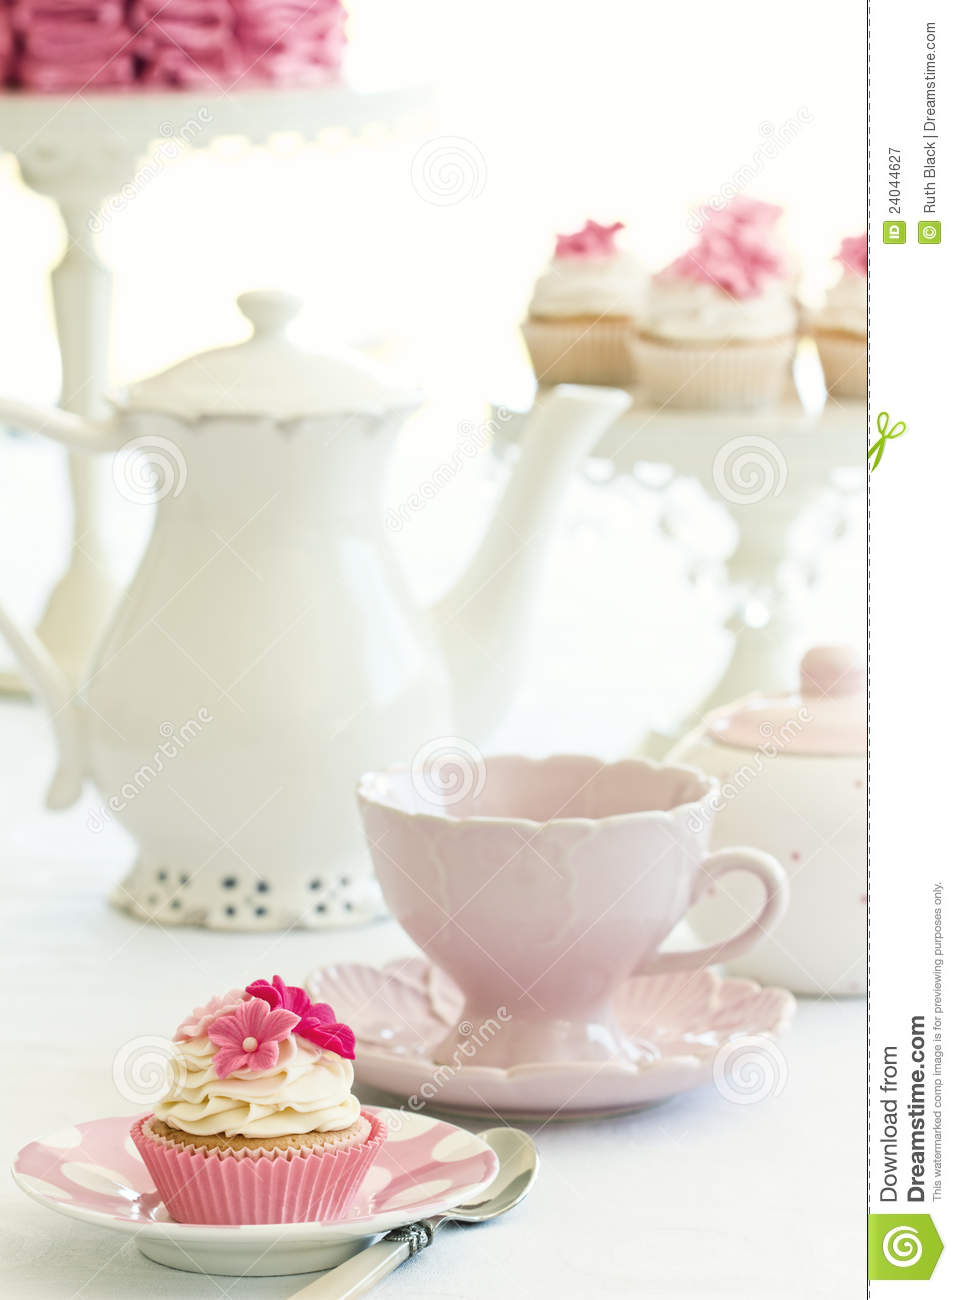 Afternoon Tea Royalty Free Stock Photography Image 24044627